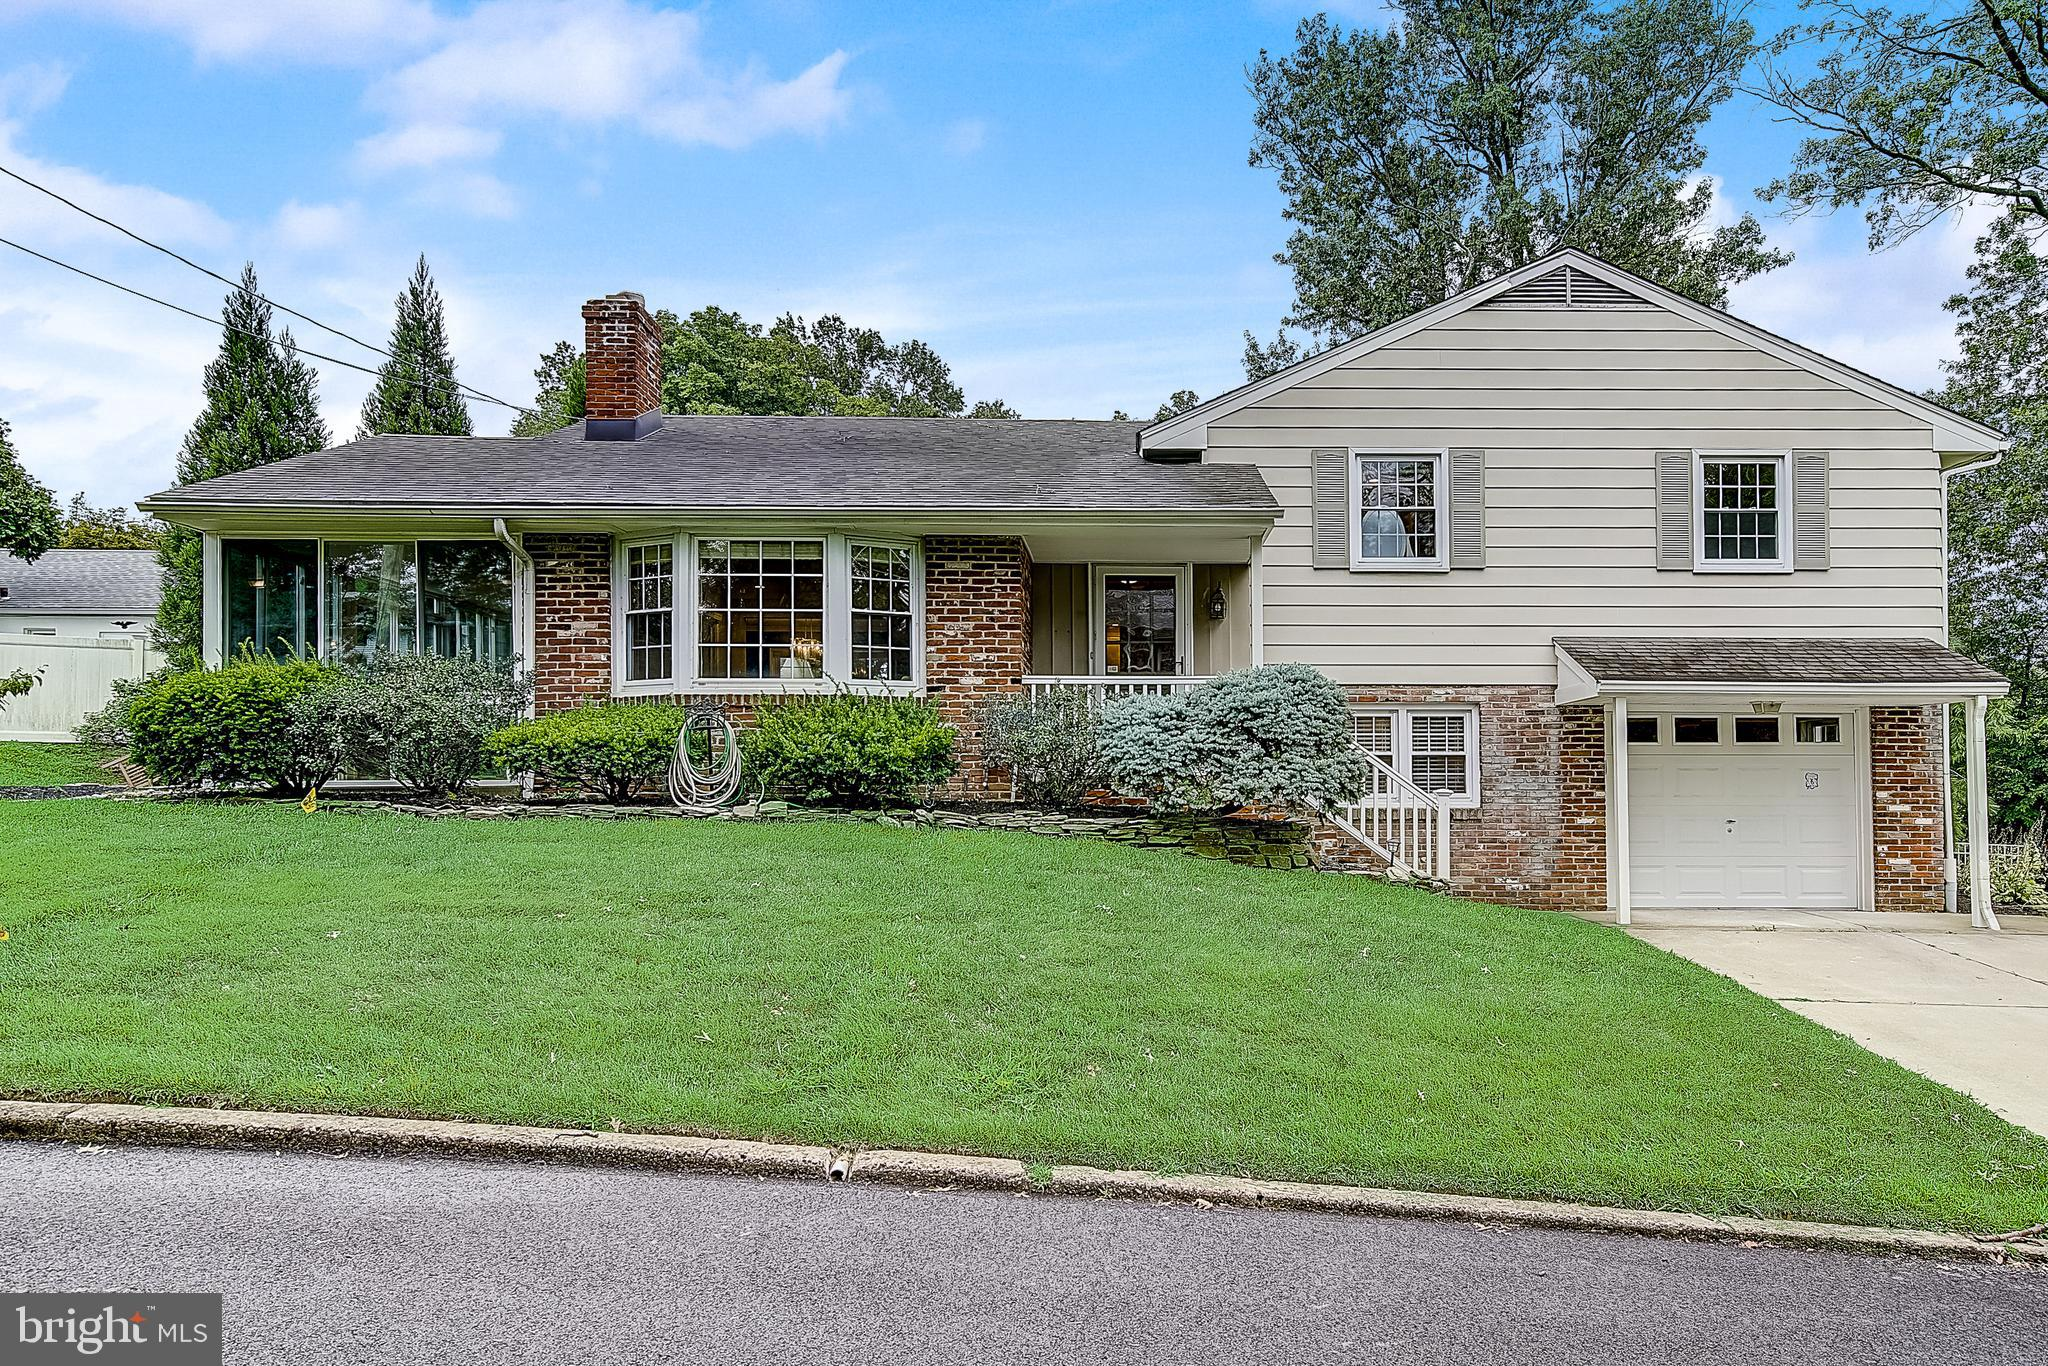 700 S NEWTON LAKE DRIVE, COLLINGSWOOD, NJ 08108